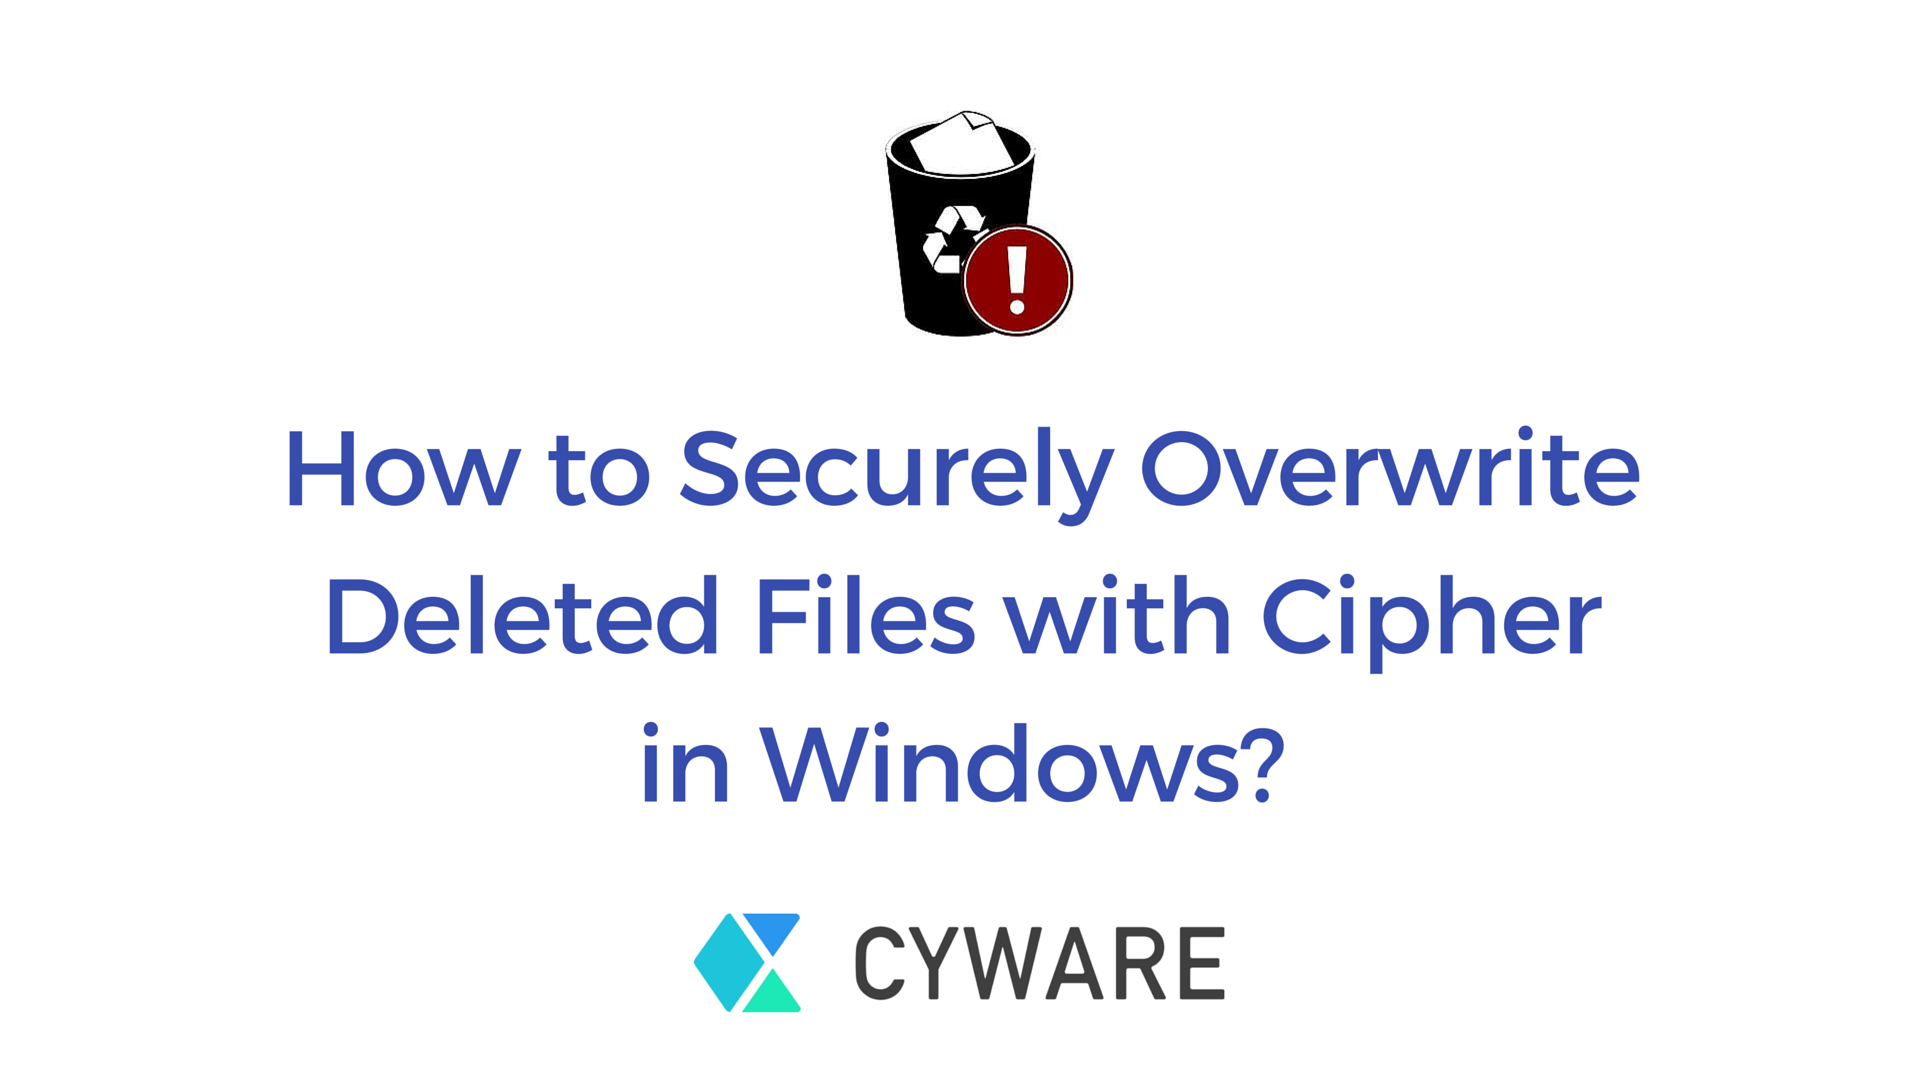 How to securely overwrite deleted files with Cipher in Windows?